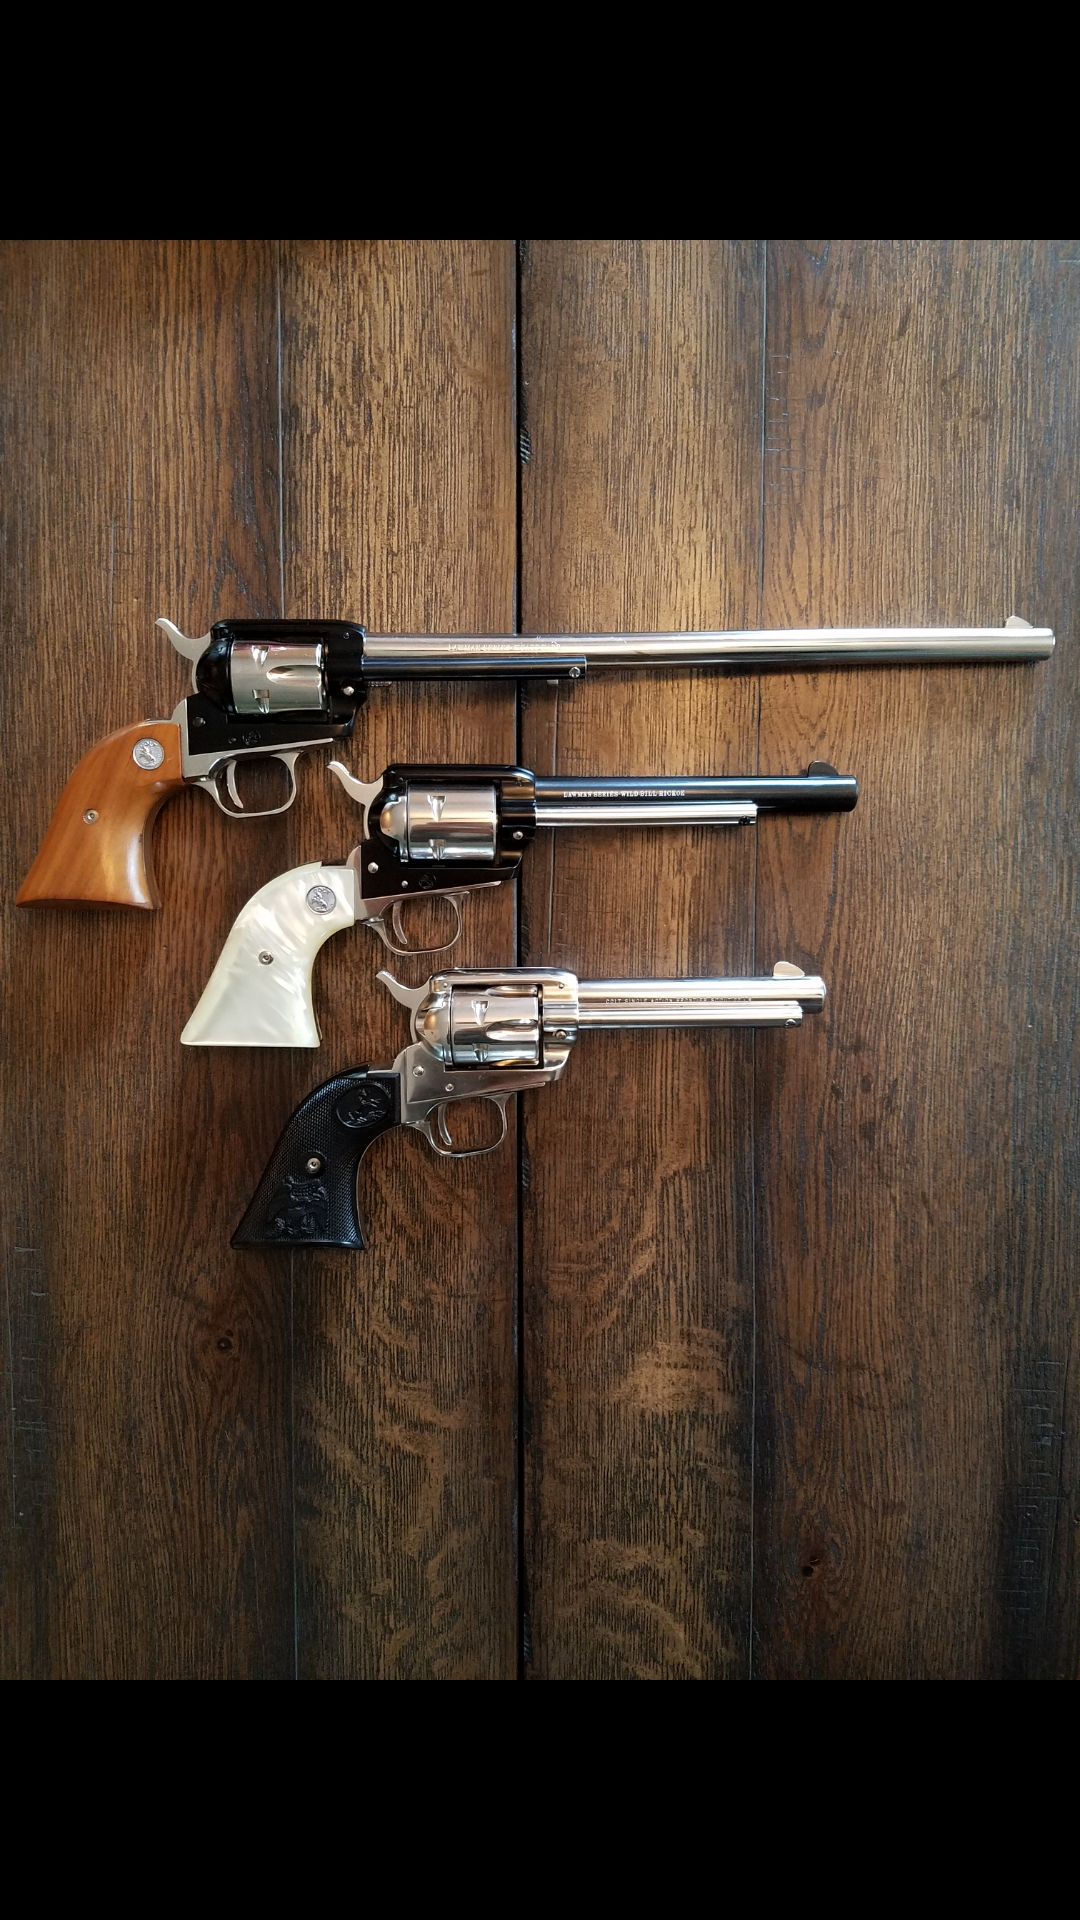 Share some Colt love - a picture thread-screenshot_20190228-152257_gallery_1573319387340.jpg